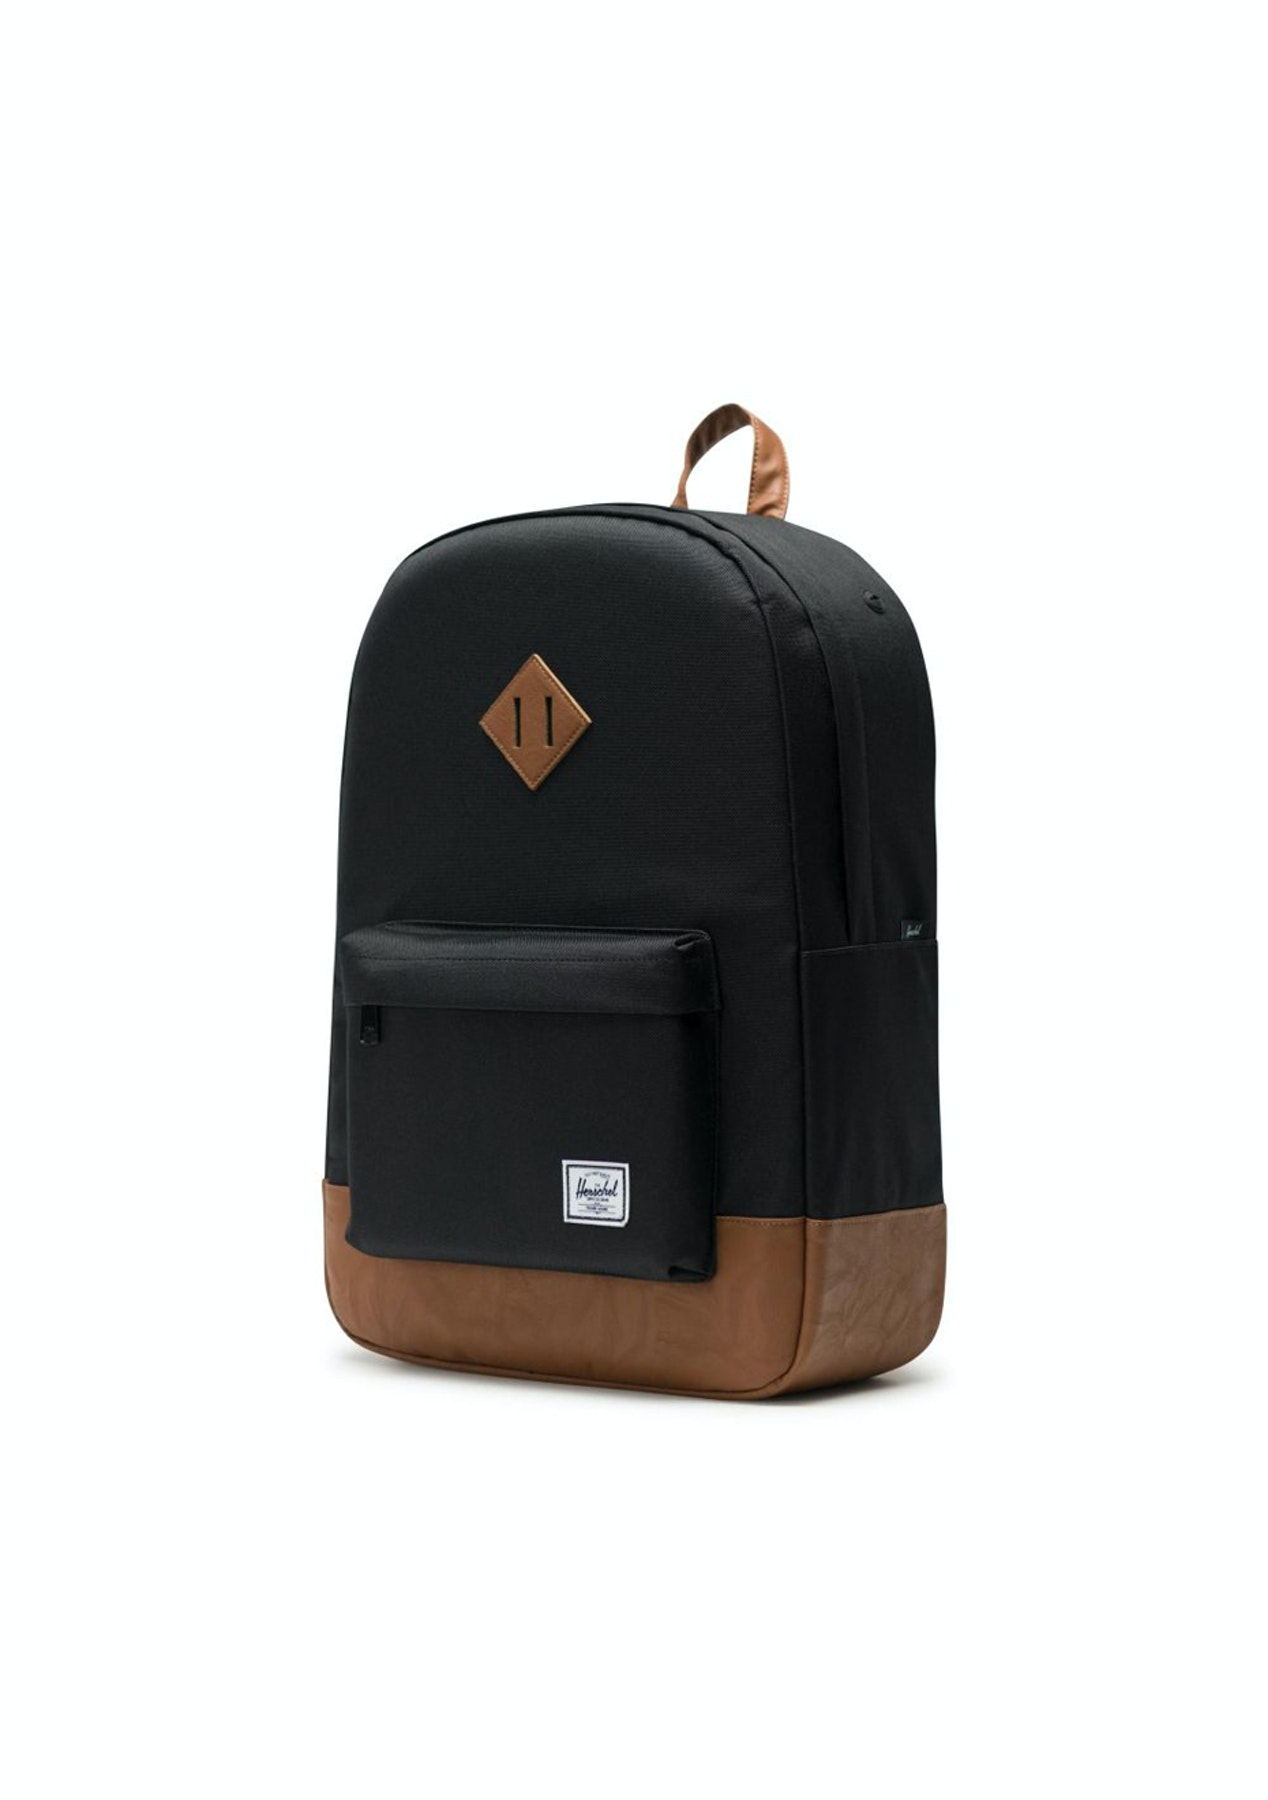 c28d77cb5c5 Herschel Supply Co - Heritage - Black Tan Synthetic Leather - Herschel  Supply Co. - Onceit